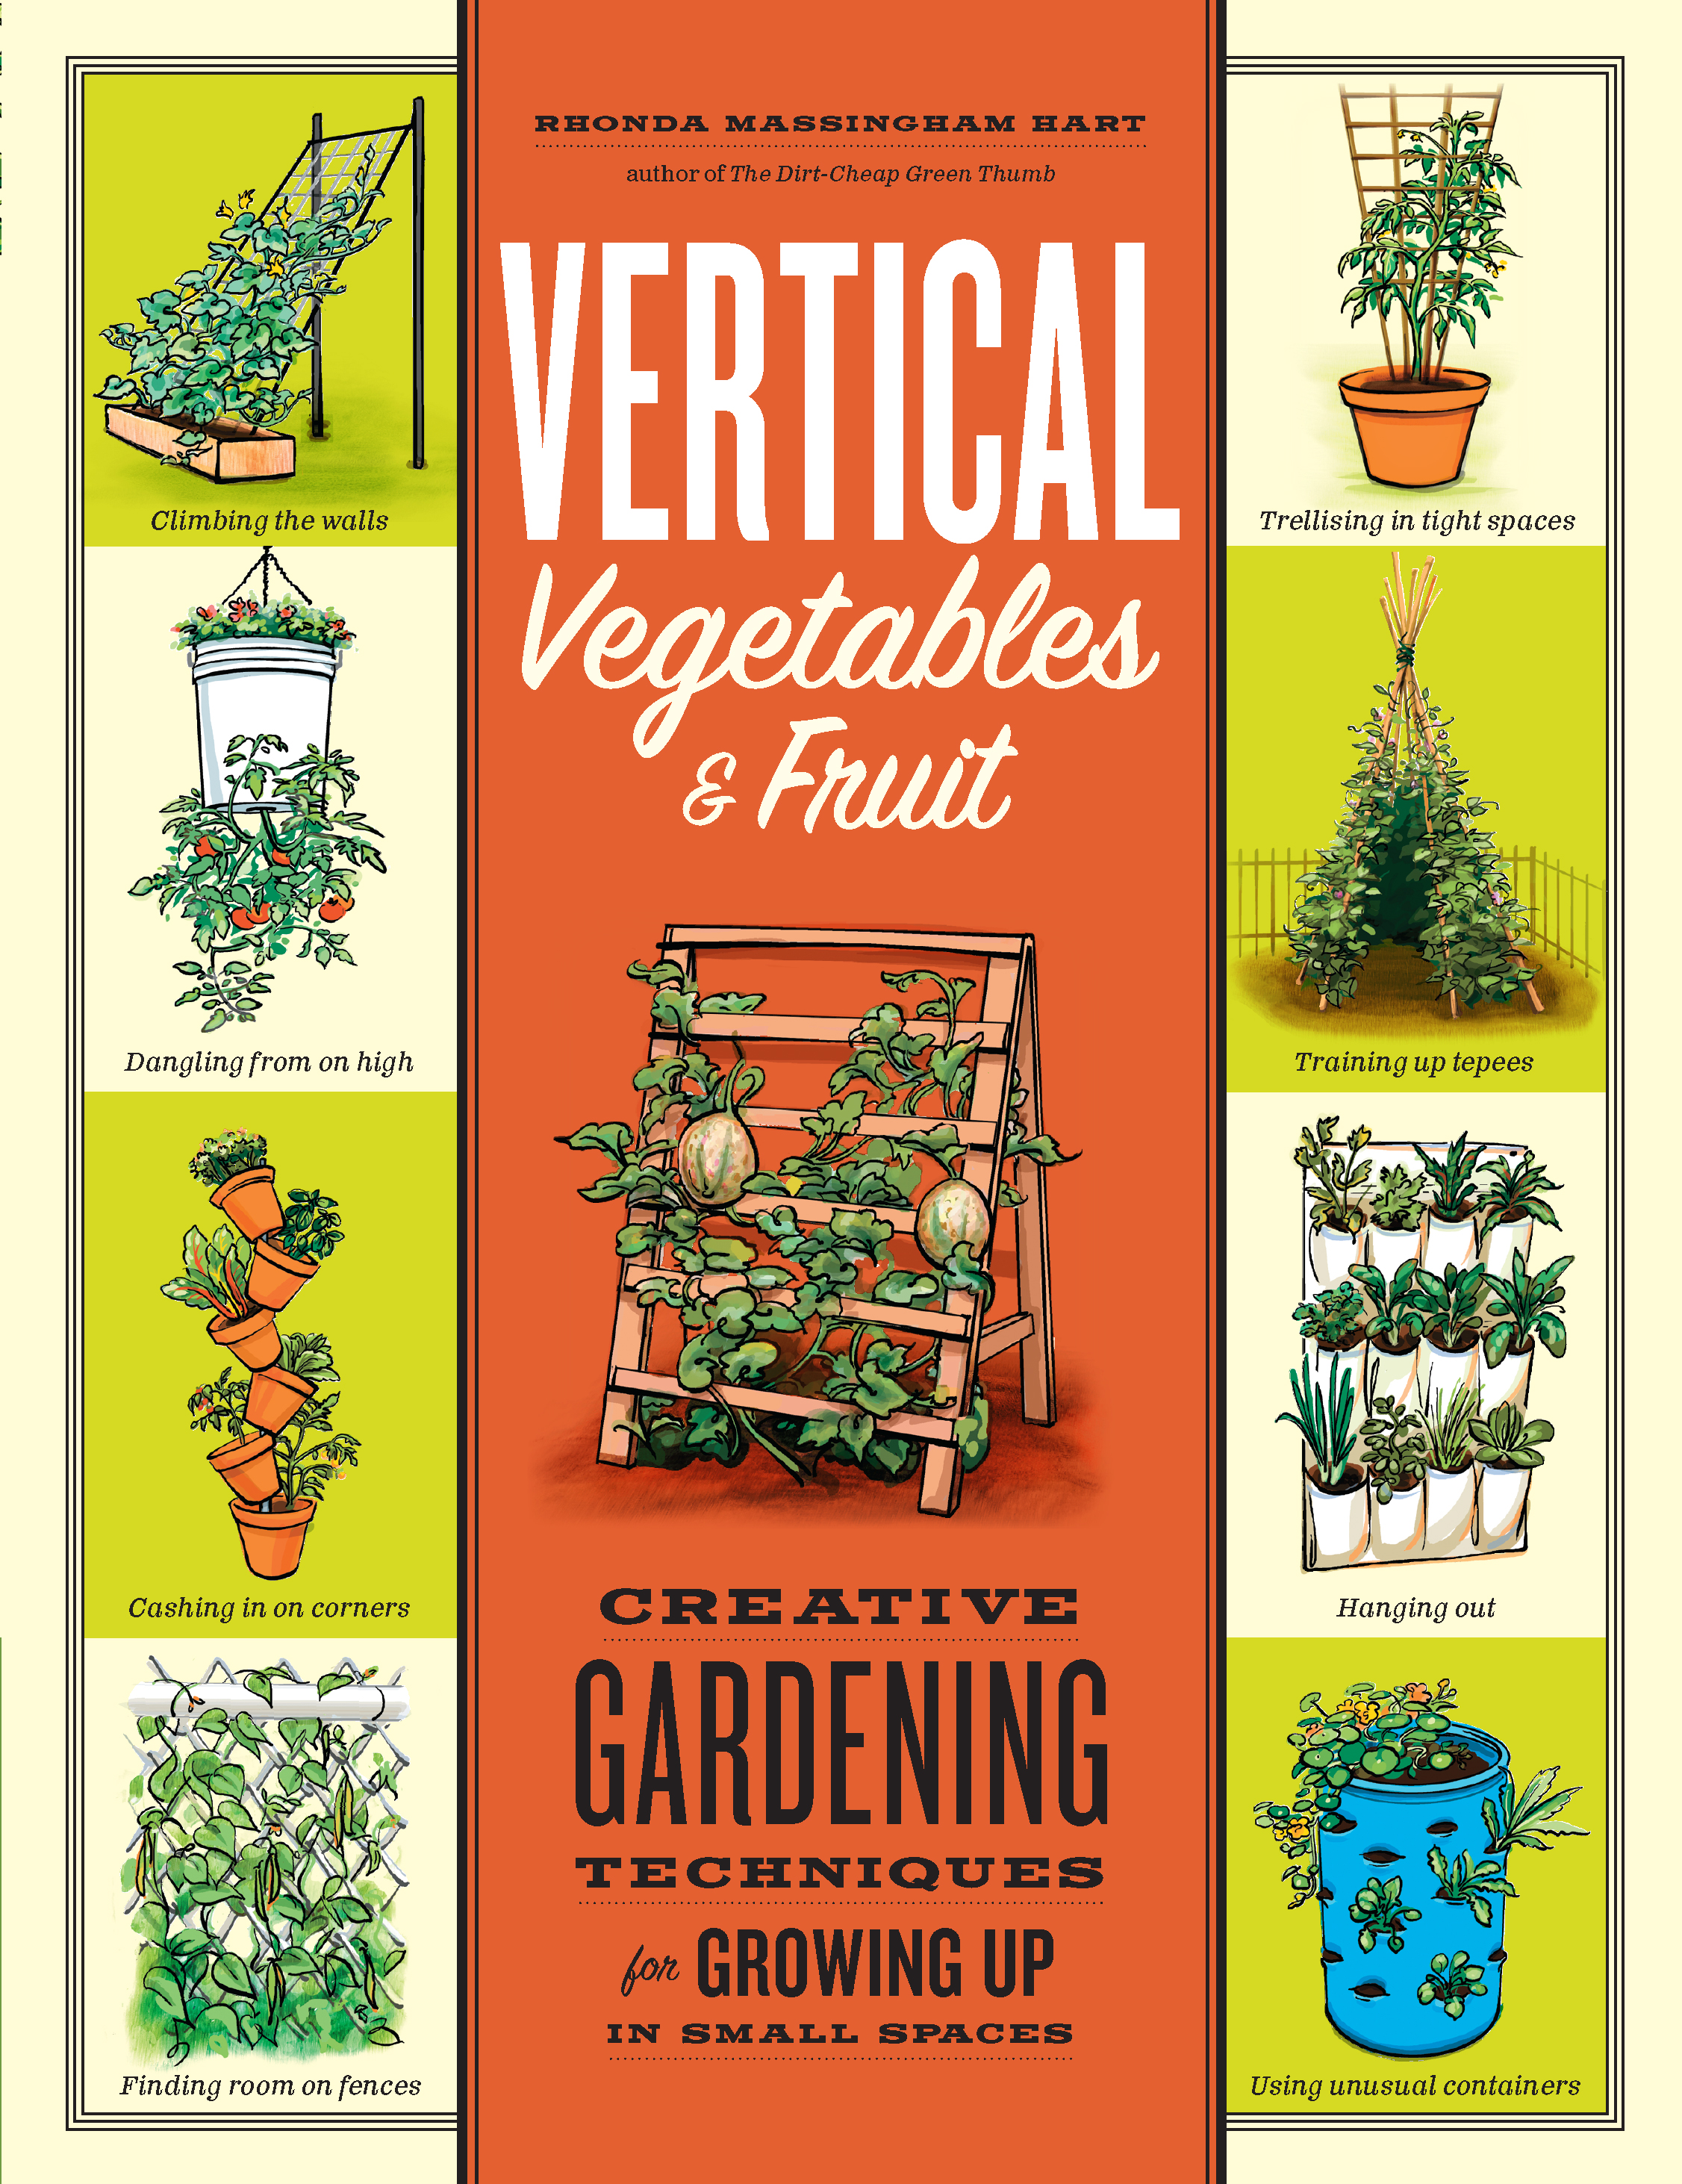 Vertical Vegetables & Fruit Creative Gardening Techniques for Growing Up in Small Spaces